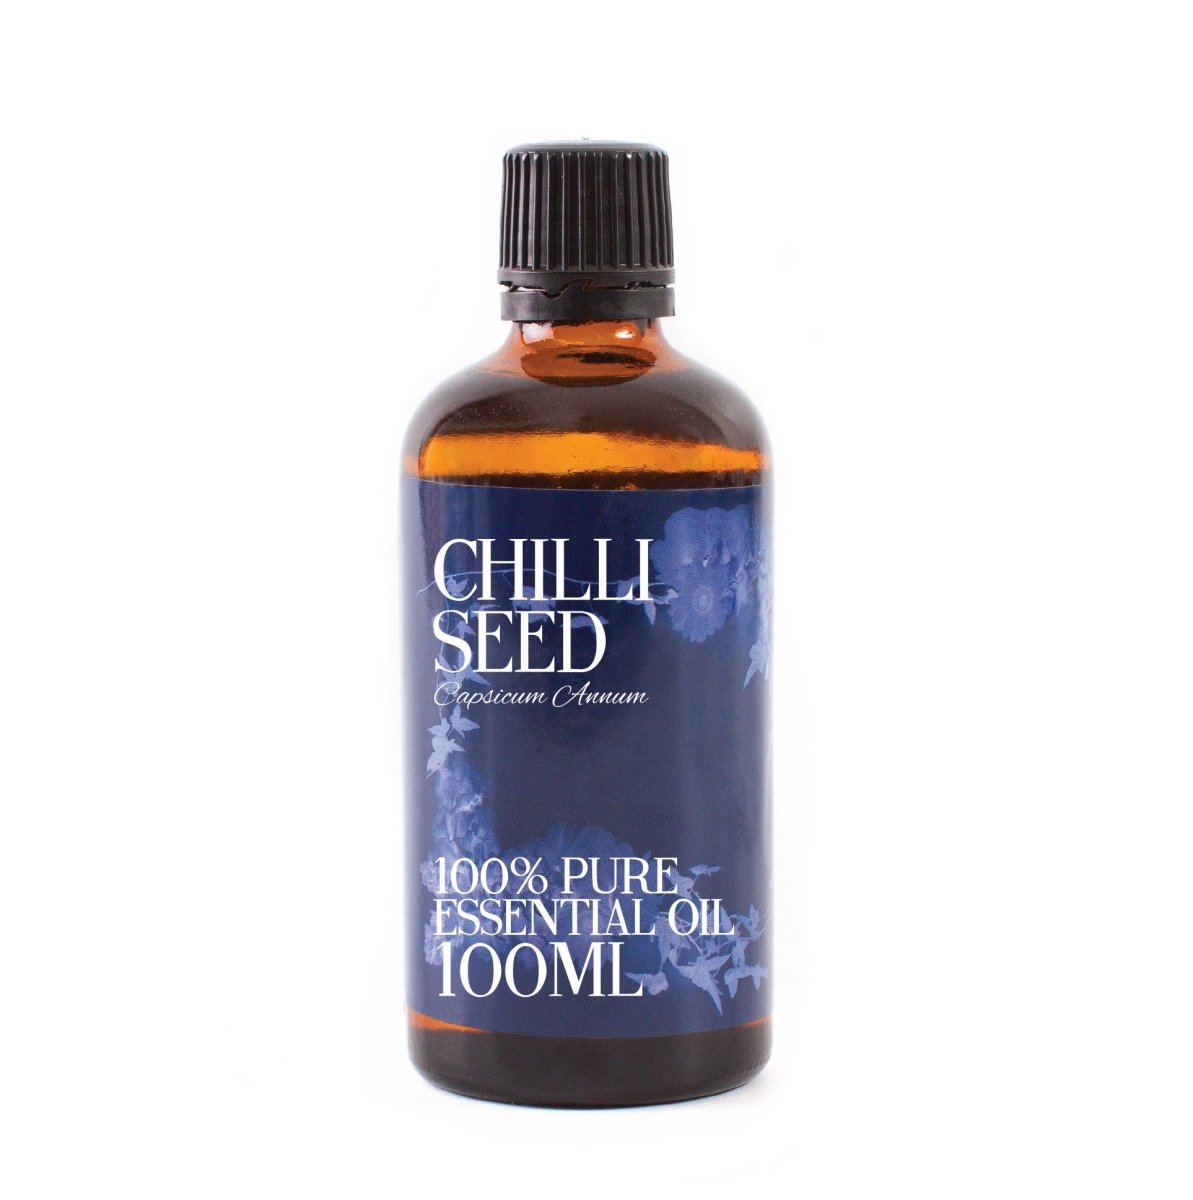 Chilli Seed Essential Oil - Mystic Moments UK